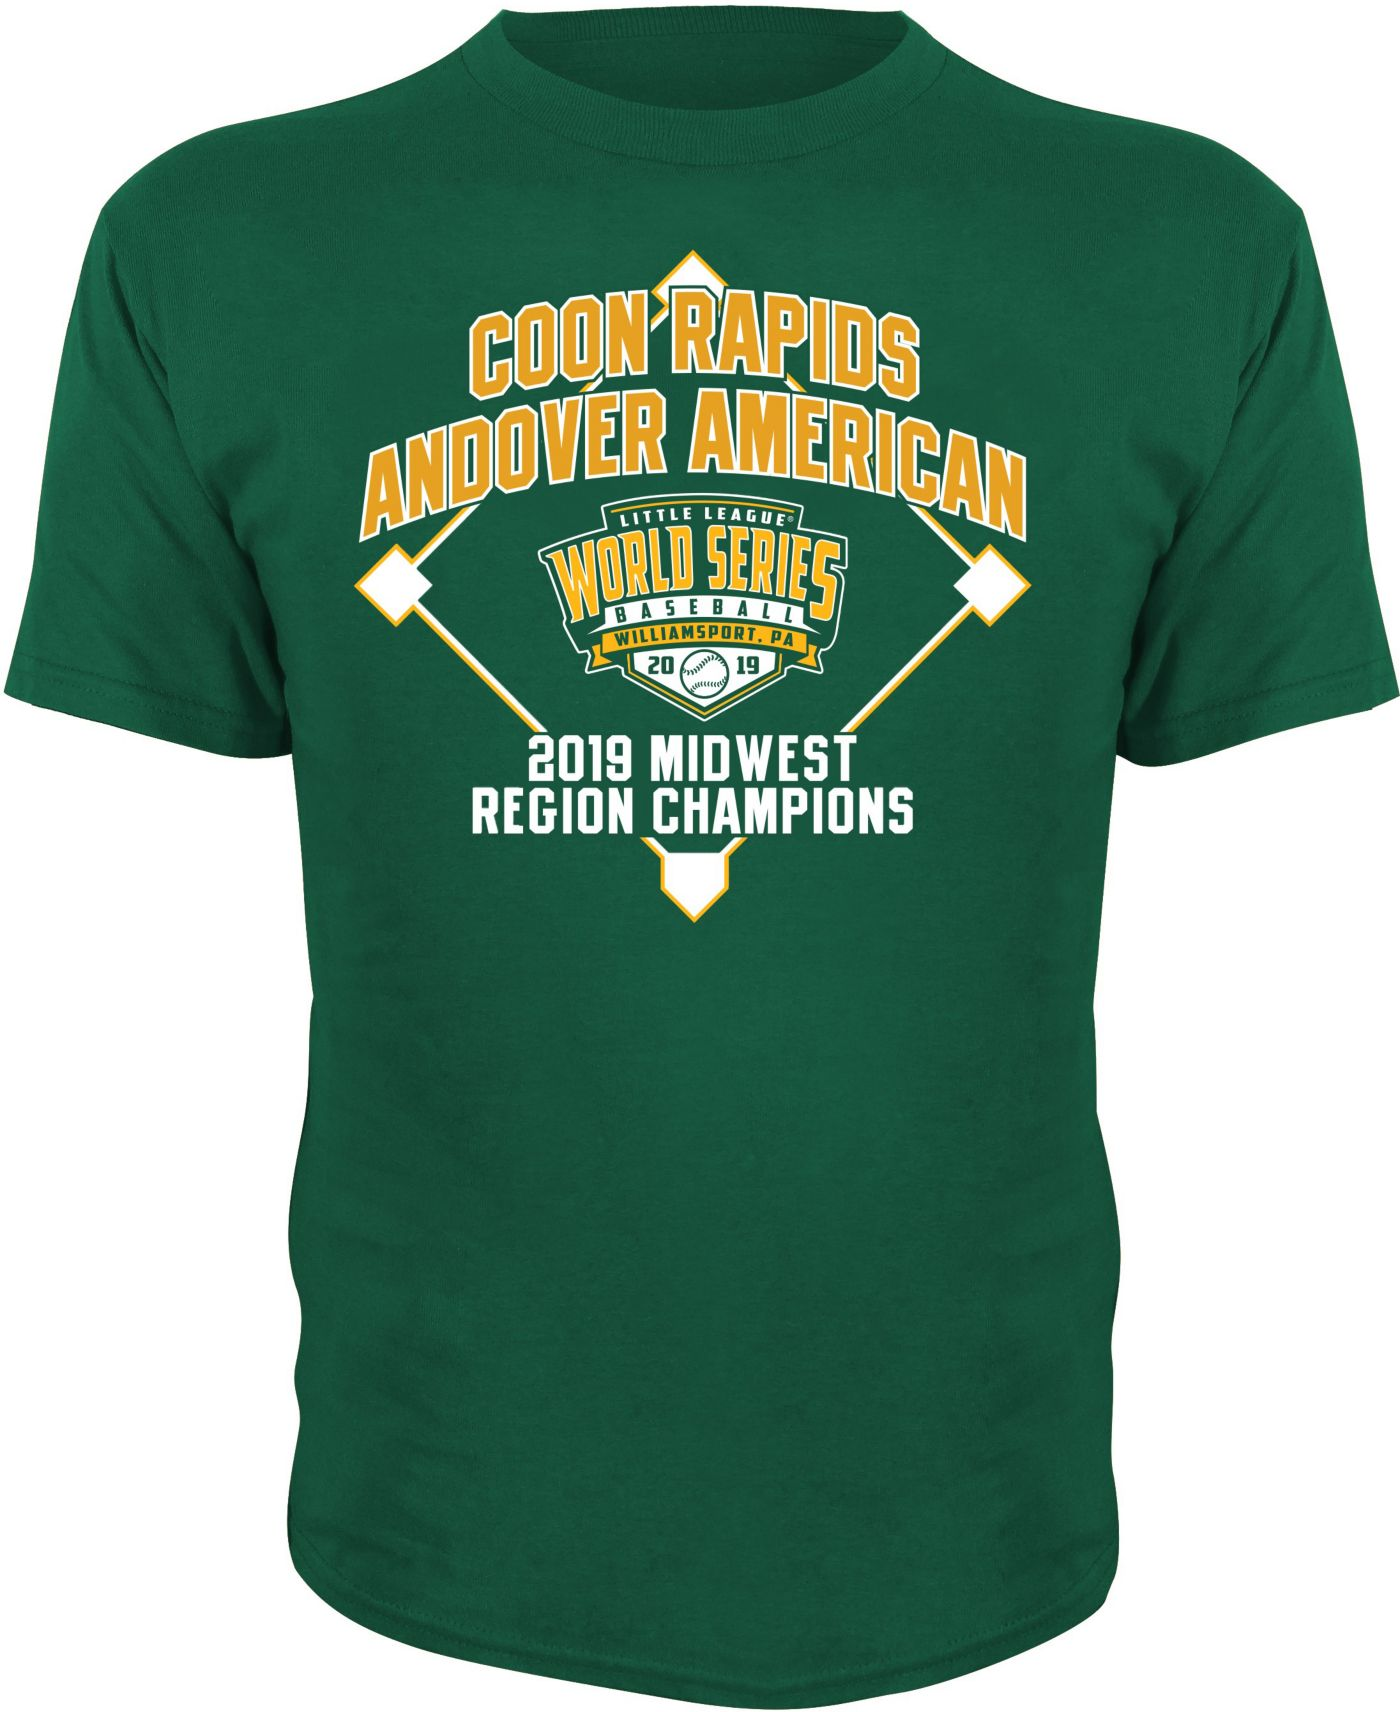 Stitches Youth 2019 LLWS Midwest Regional Champions T-Shirt